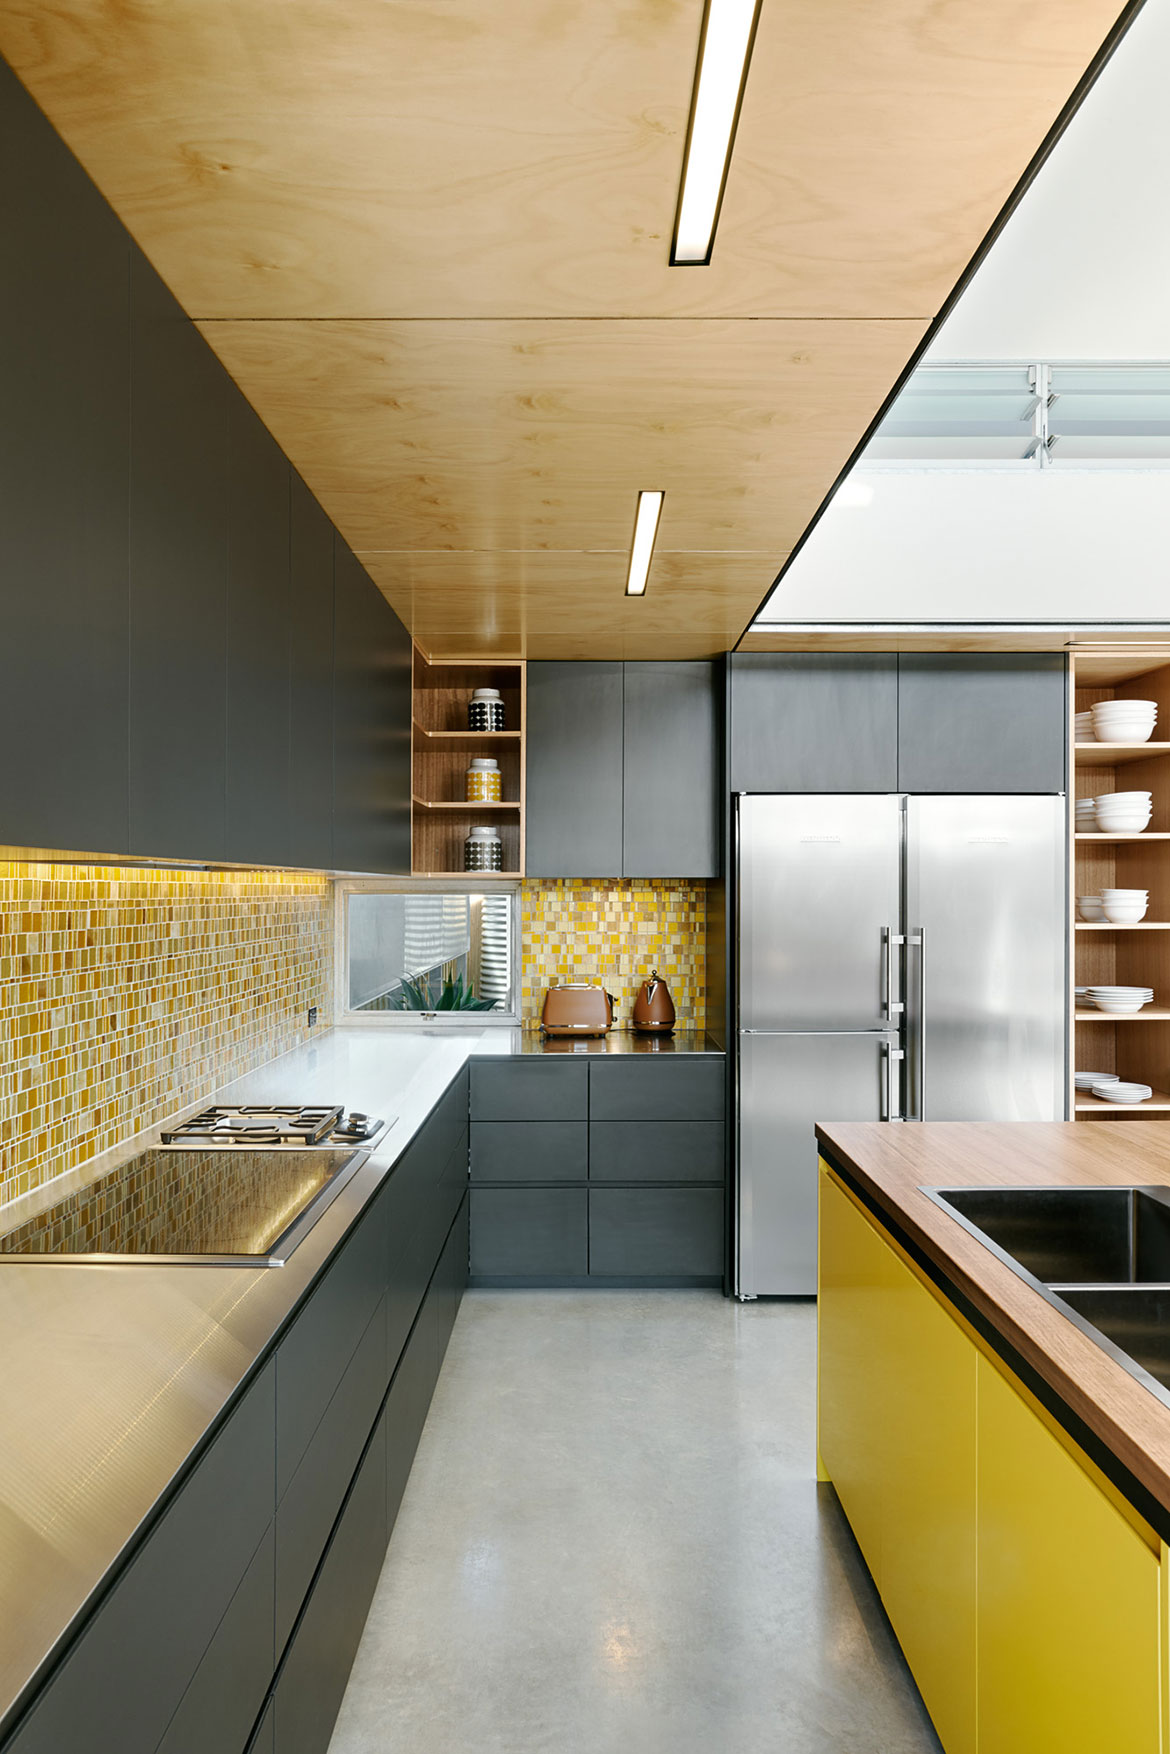 Habitus Living Laneway House Zen Architects kitchen